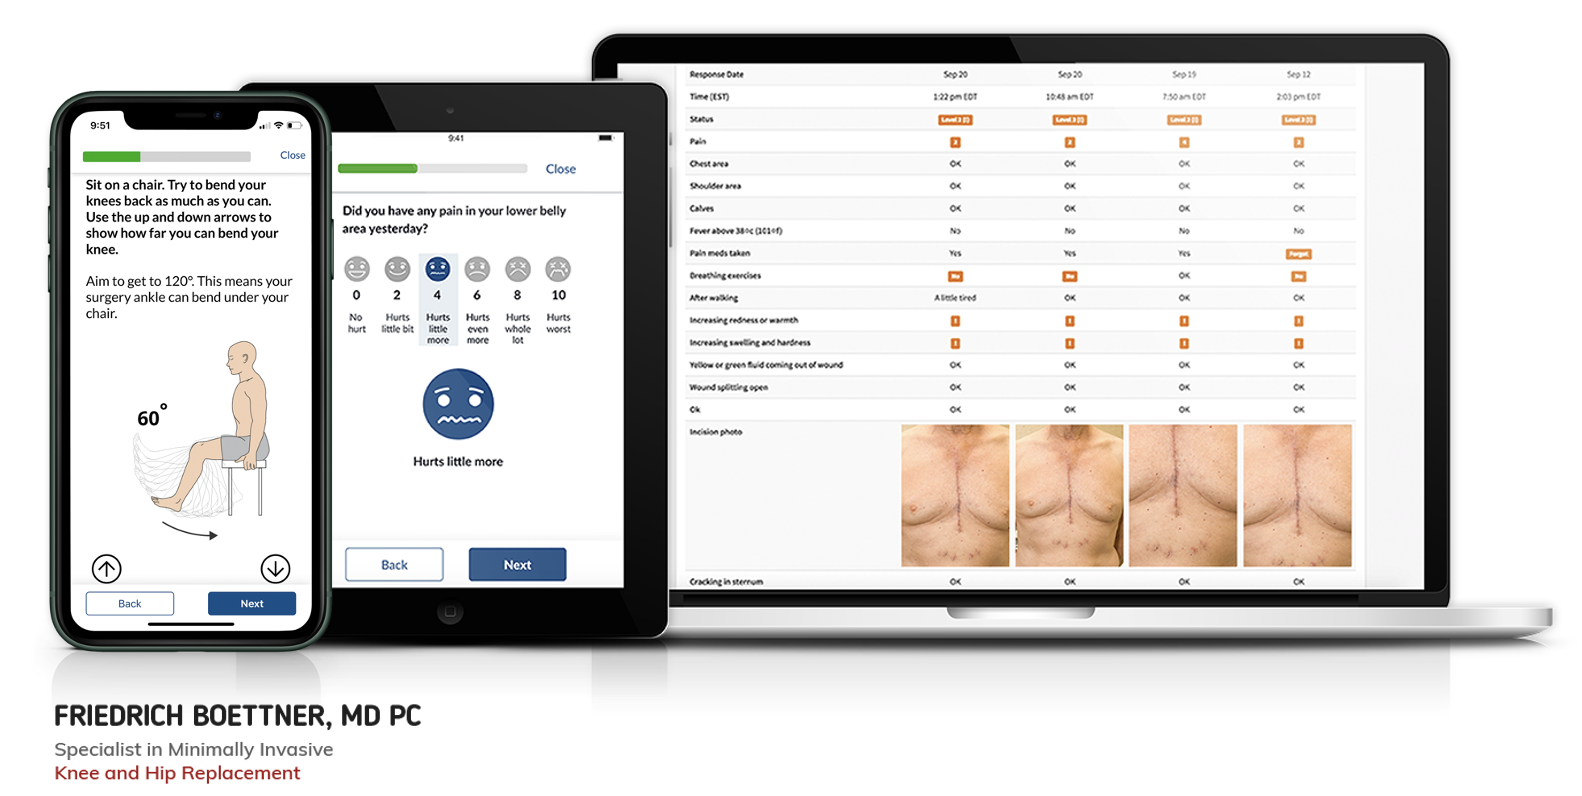 New Case Study: Collecting Patient-Reported Outcomes For Total Joint Replacement